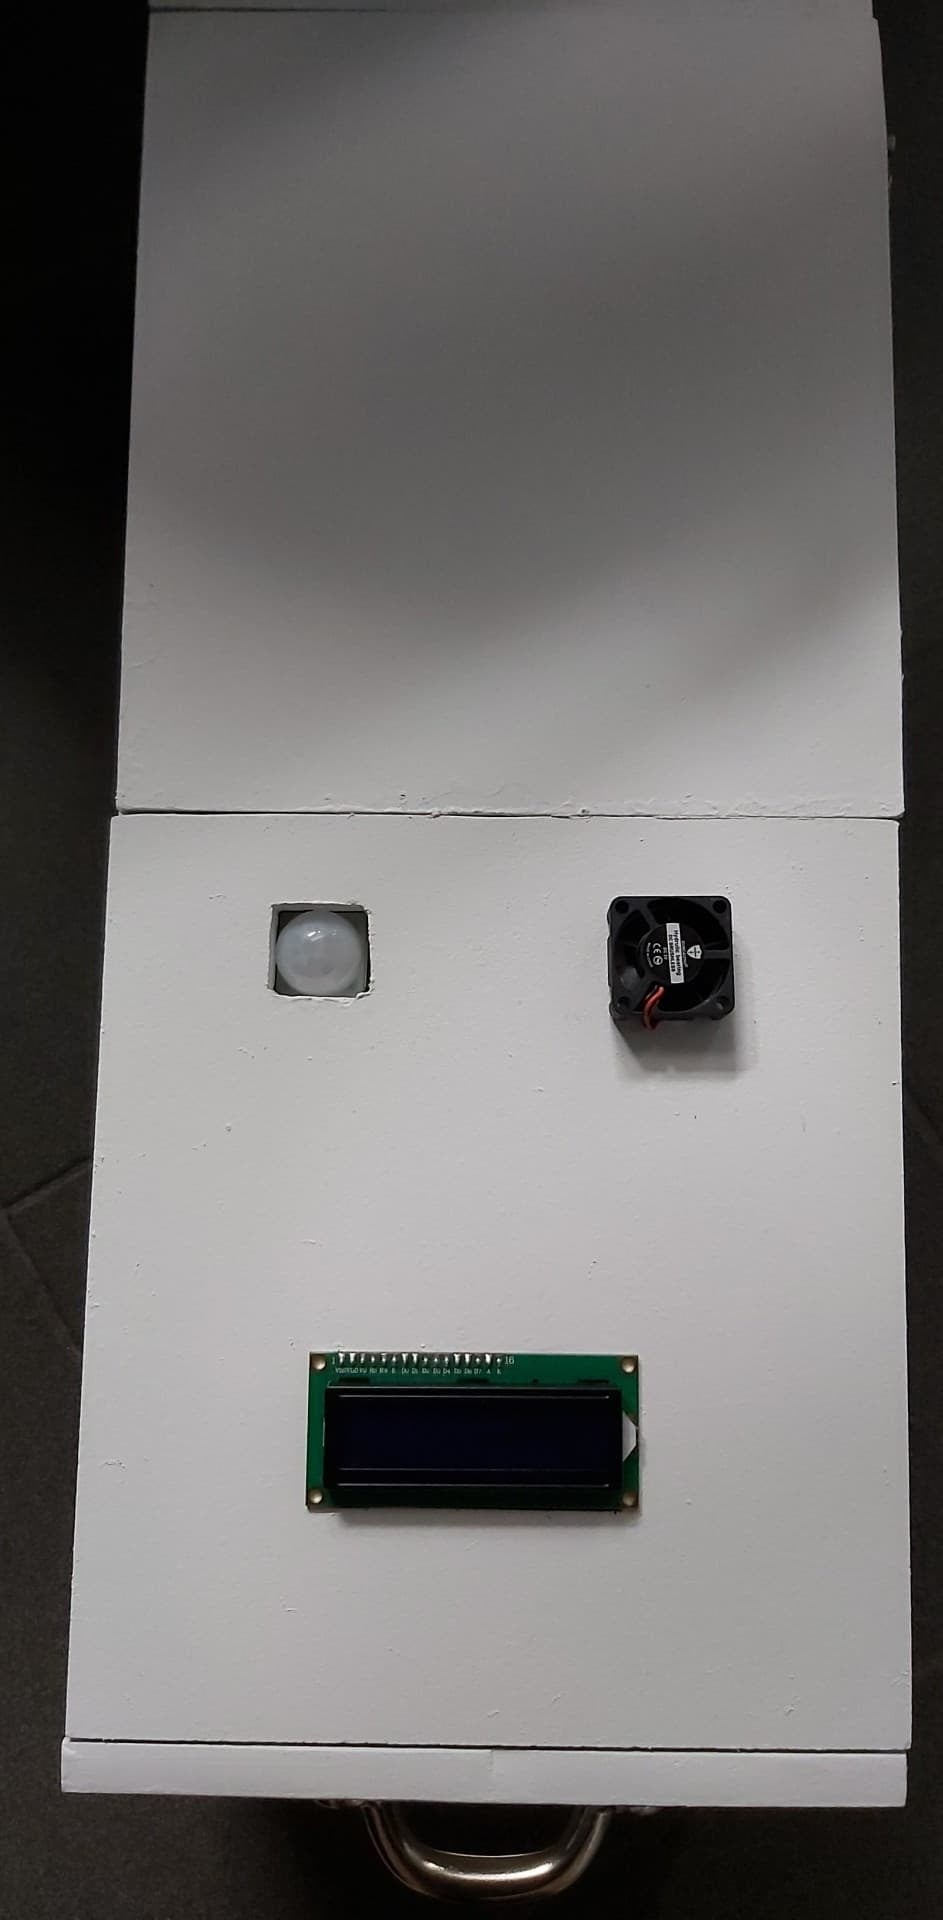 Placing the Components in the Case